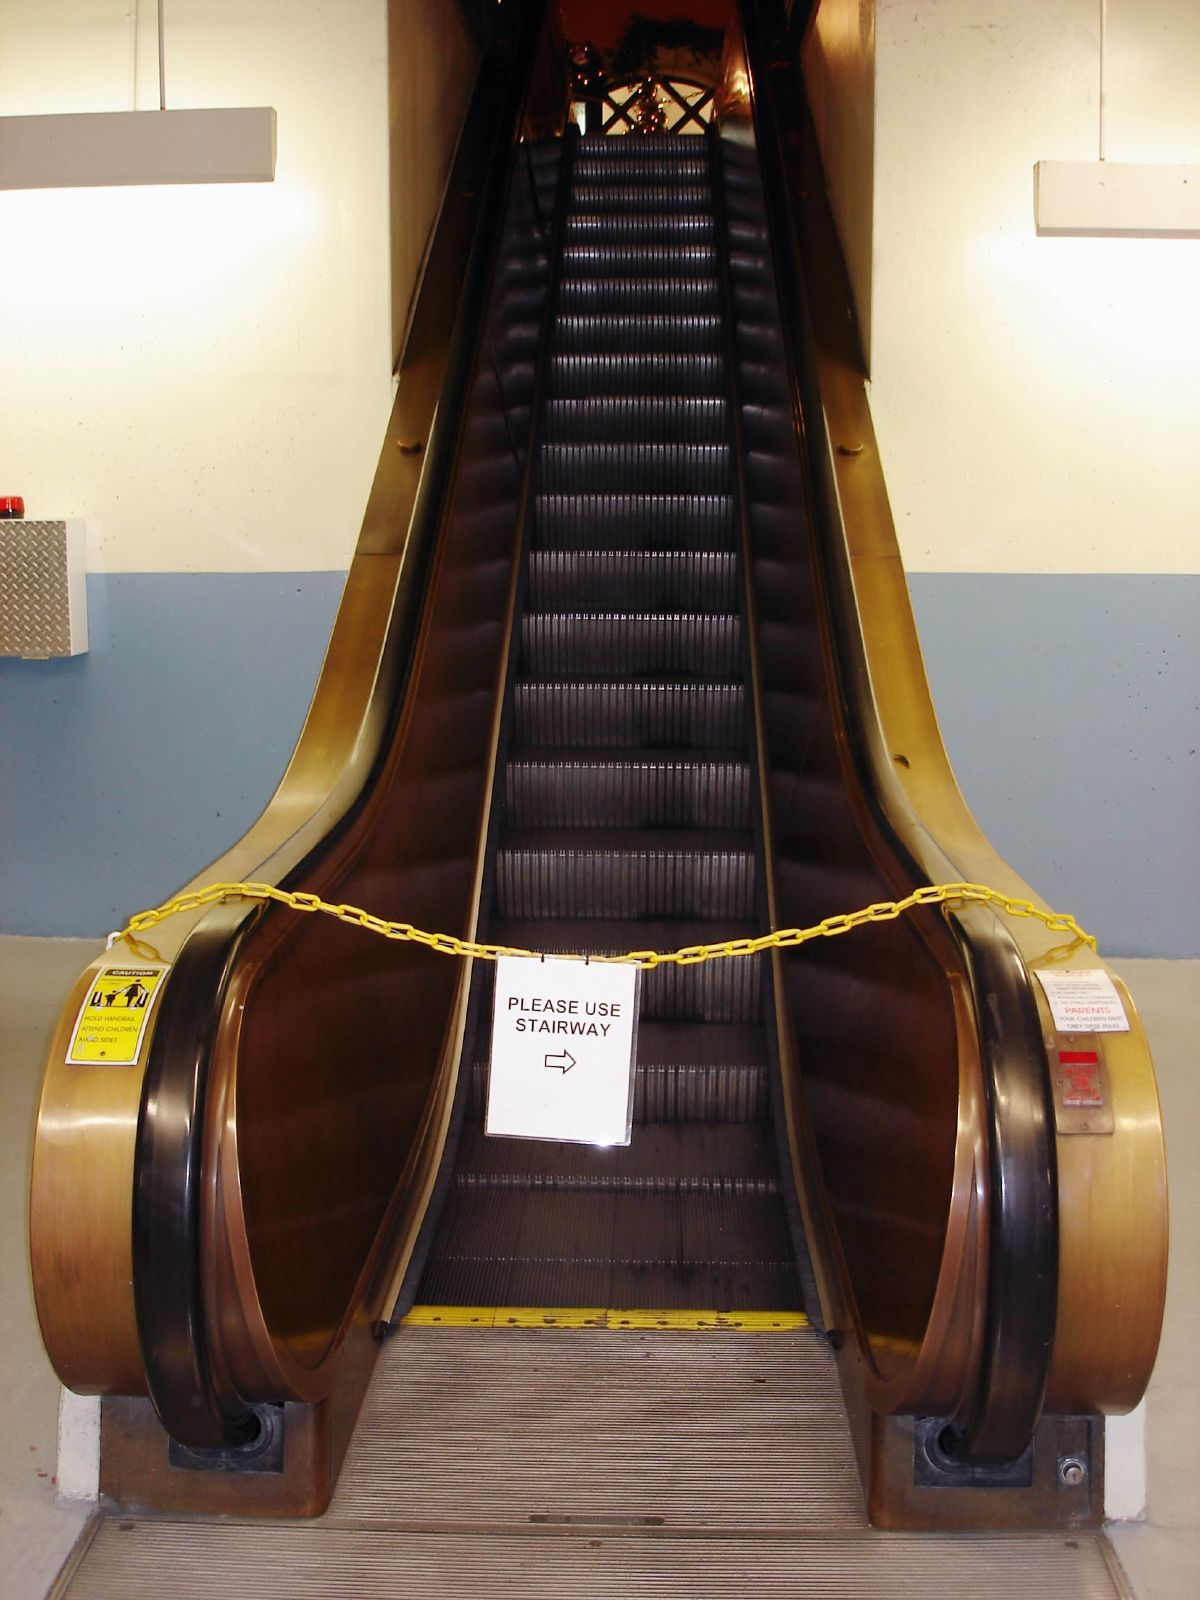 Stealth was to be my broken escalator. Sorry for the convenience. Photo by Kevin Simpson via Flickr.